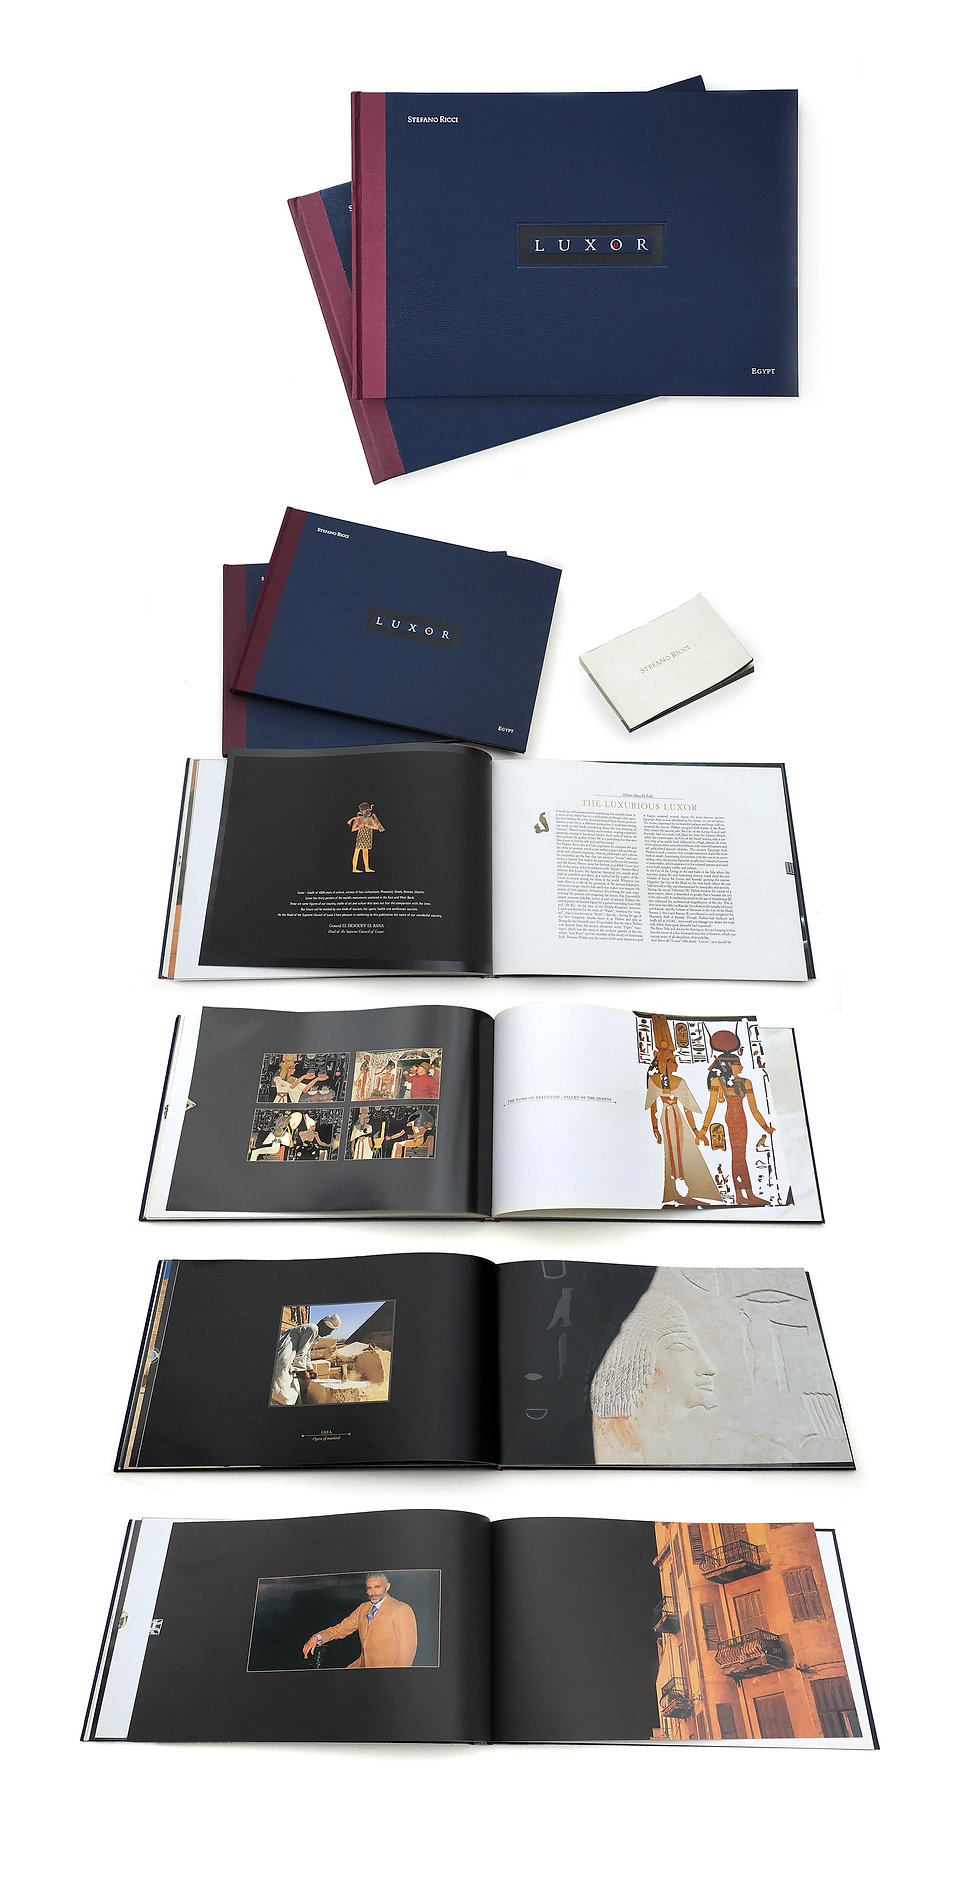 Luxor, editoria di lusso,Stefano Ricci, Coffe-table book, grafica, luxury wear, luxury design